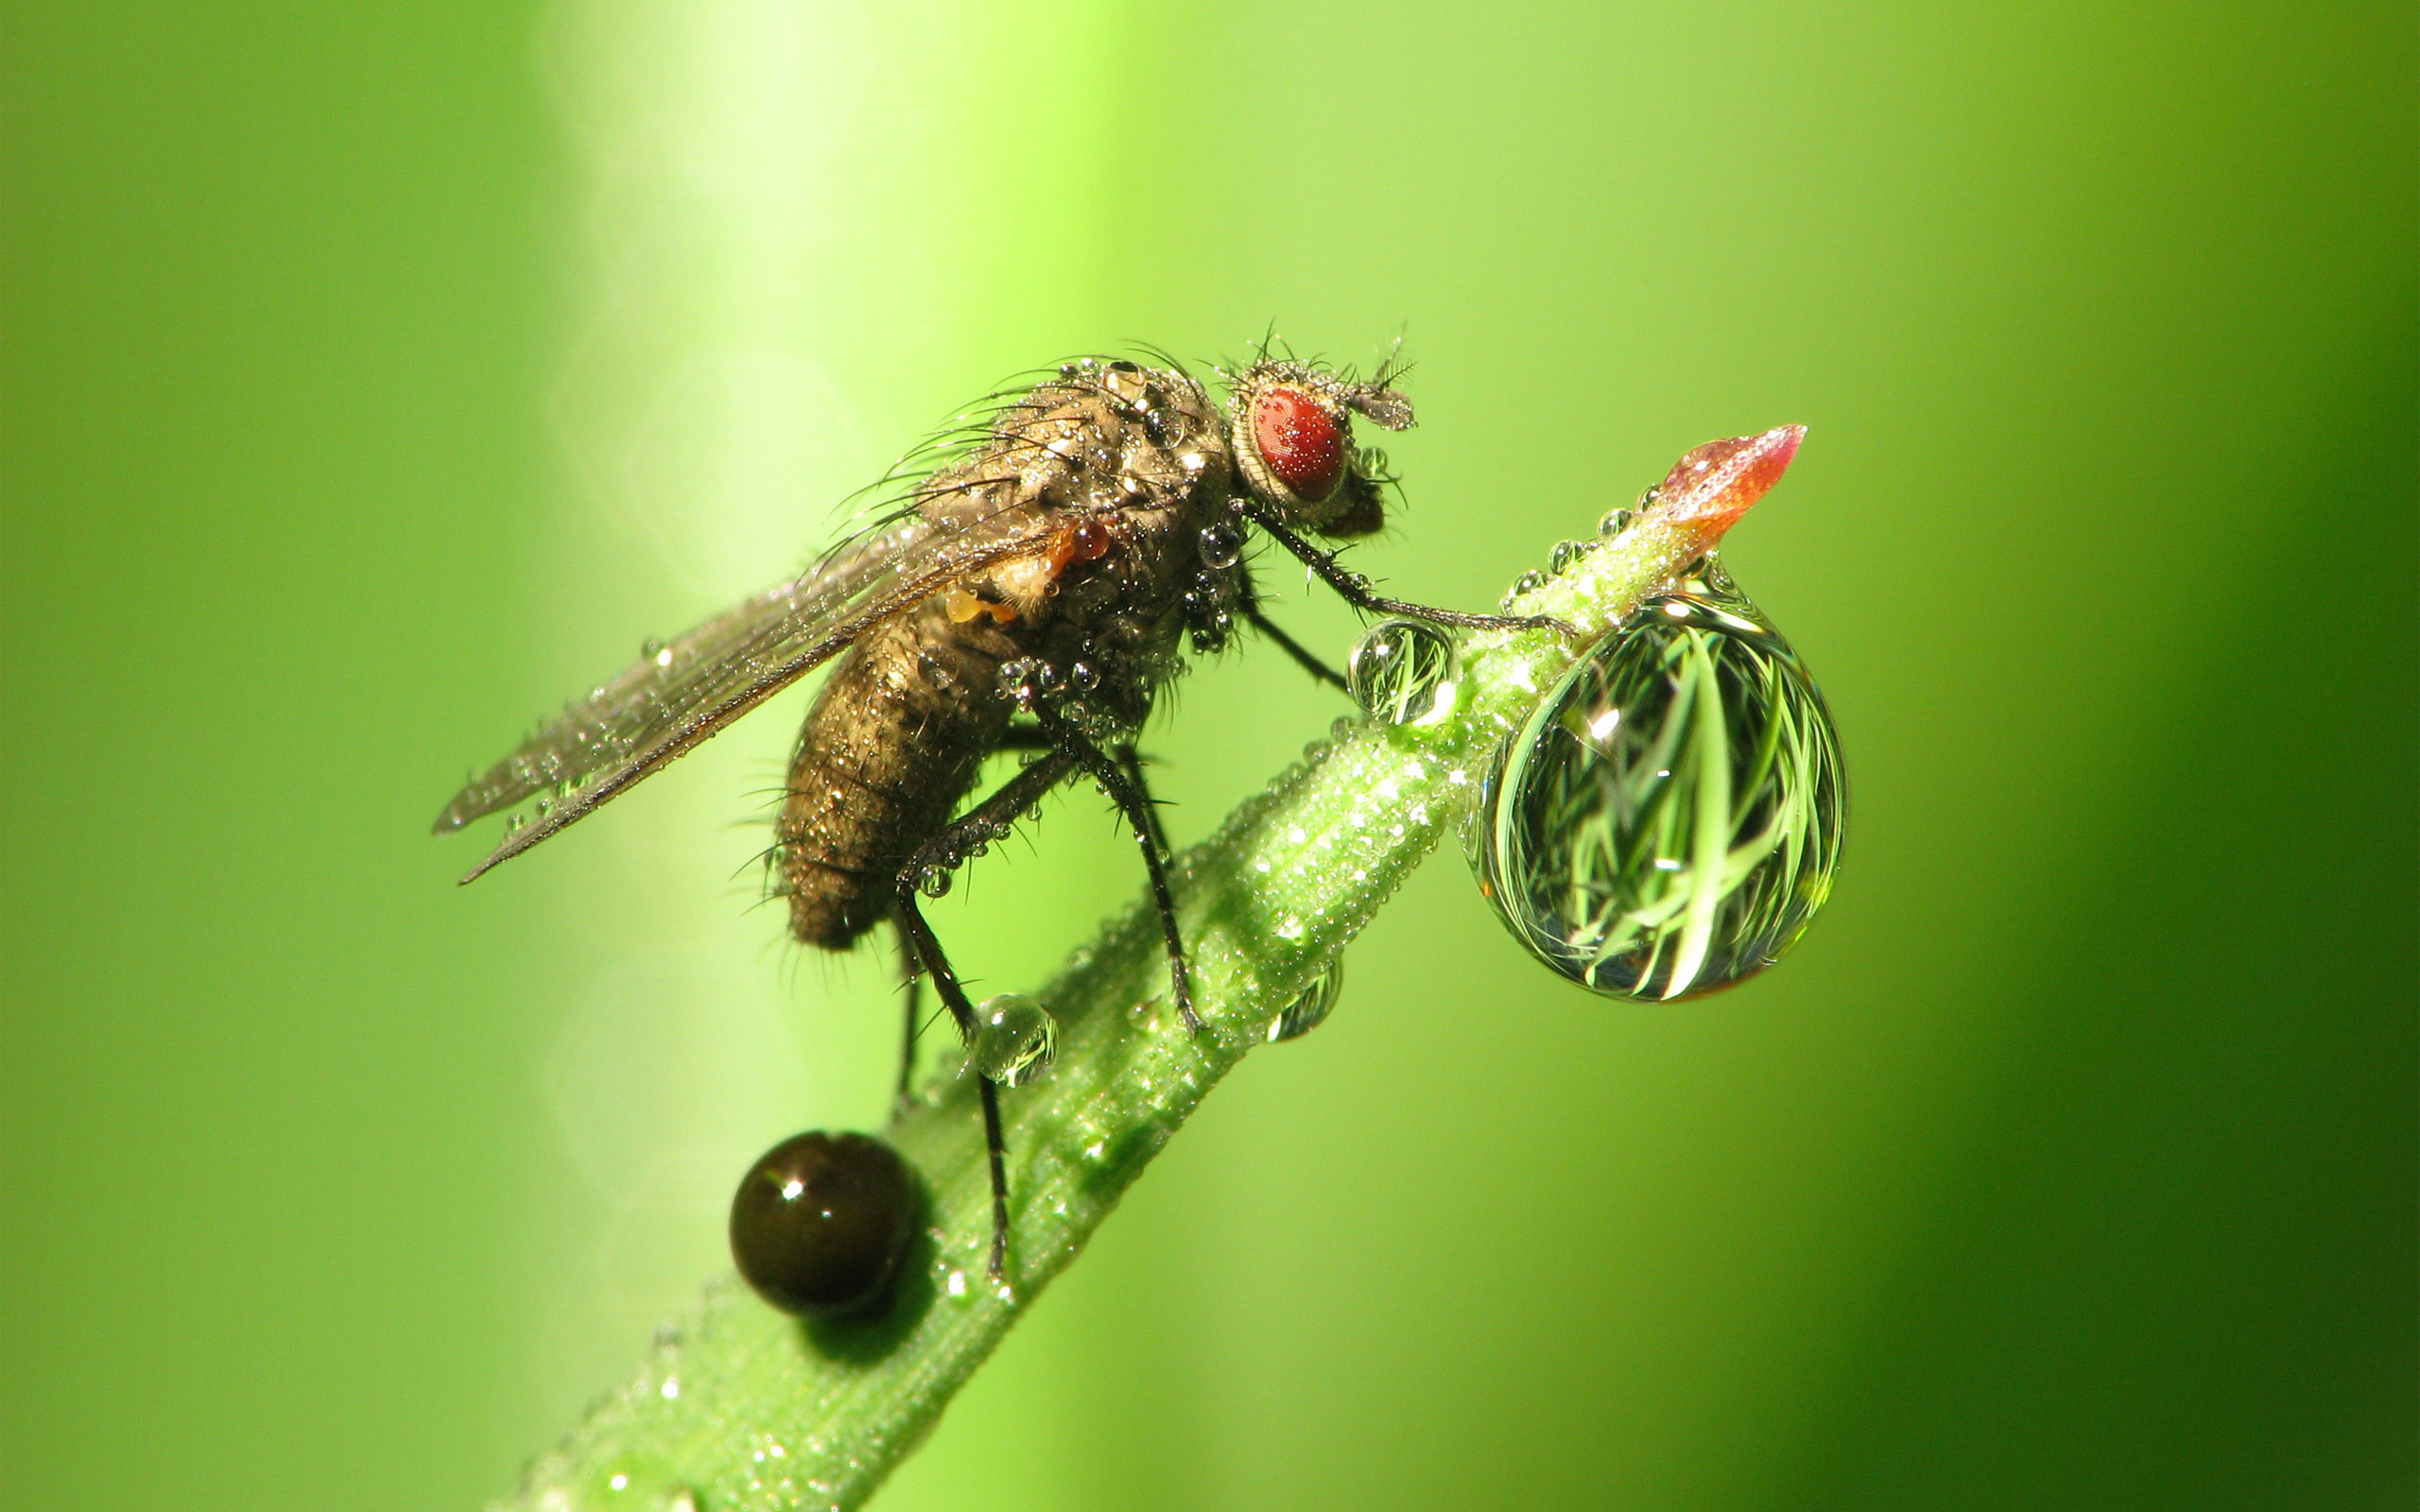 Fly and Drops